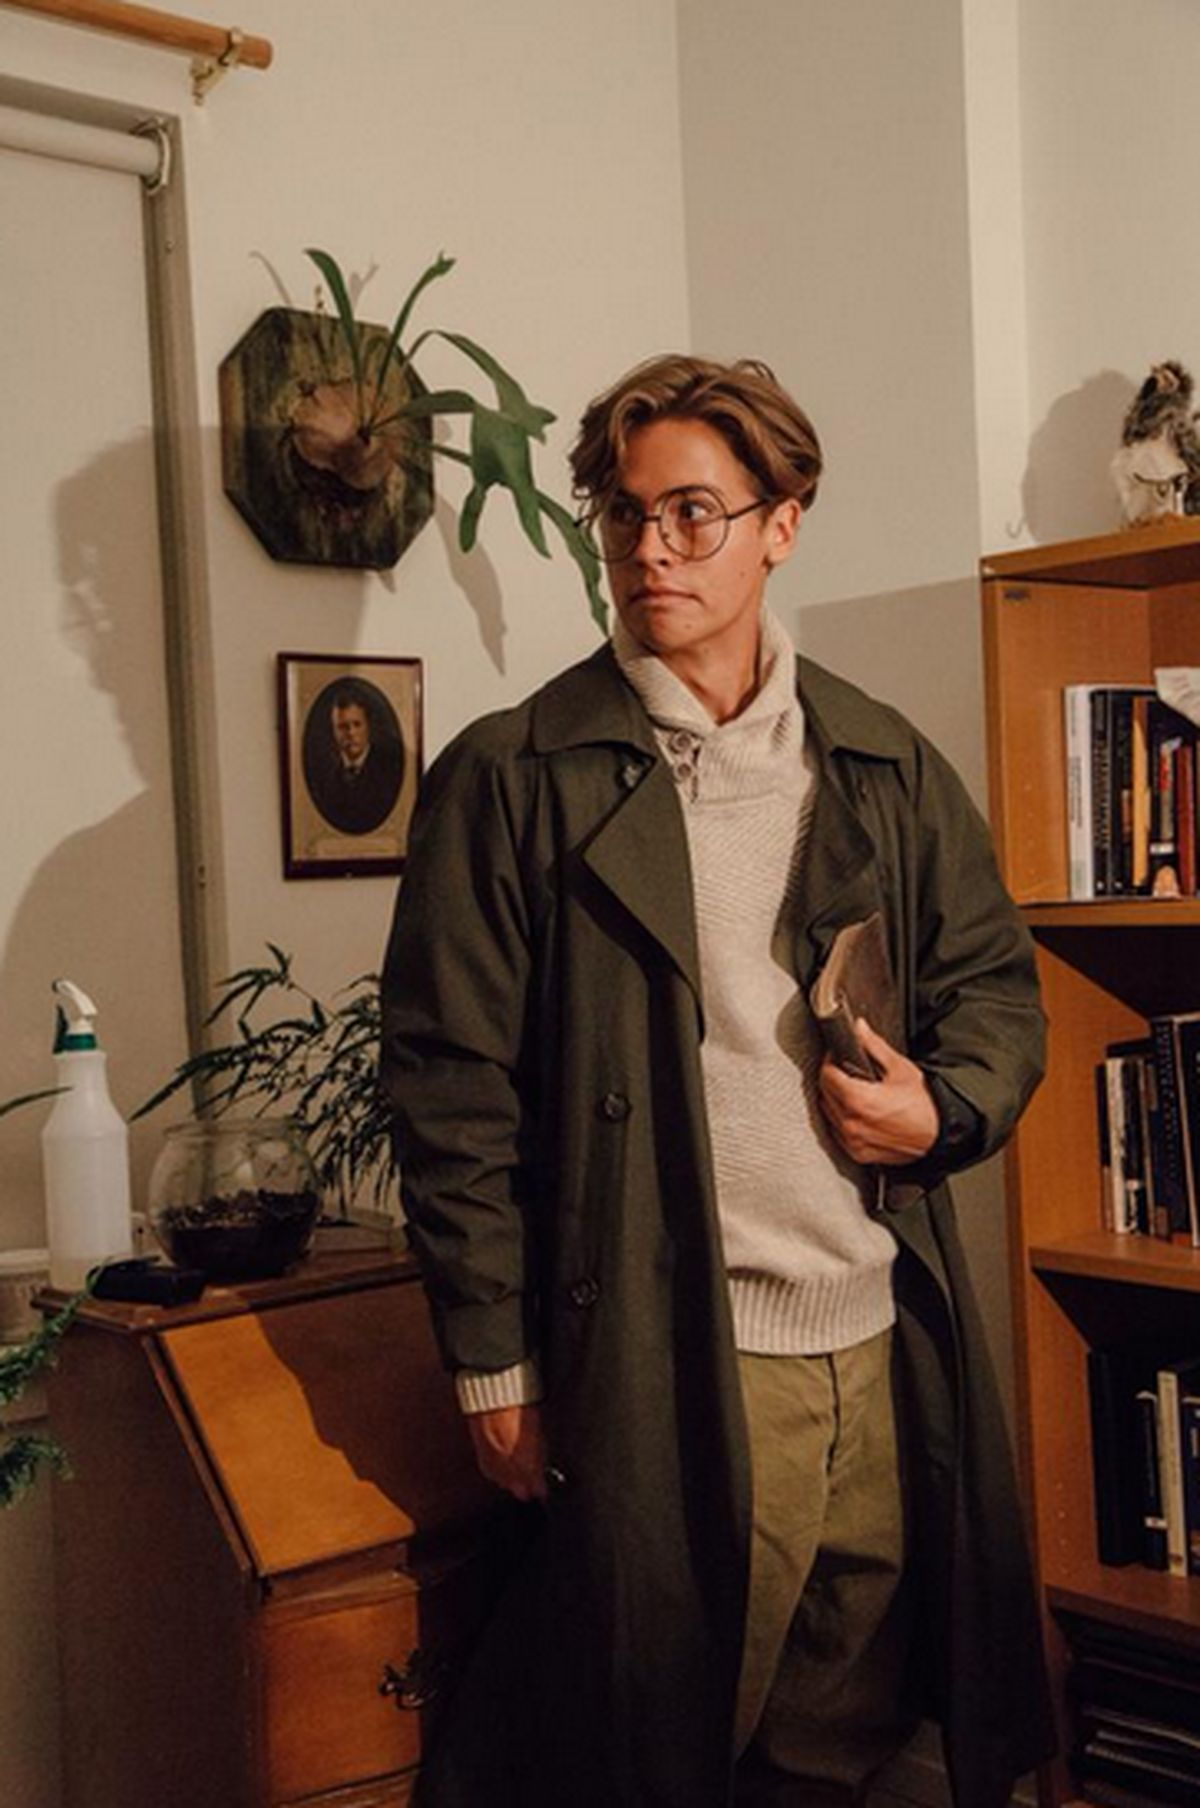 Cigarette Wallpaper Hd Cole Sprouse Cosplaying As Milo Thatch This Is